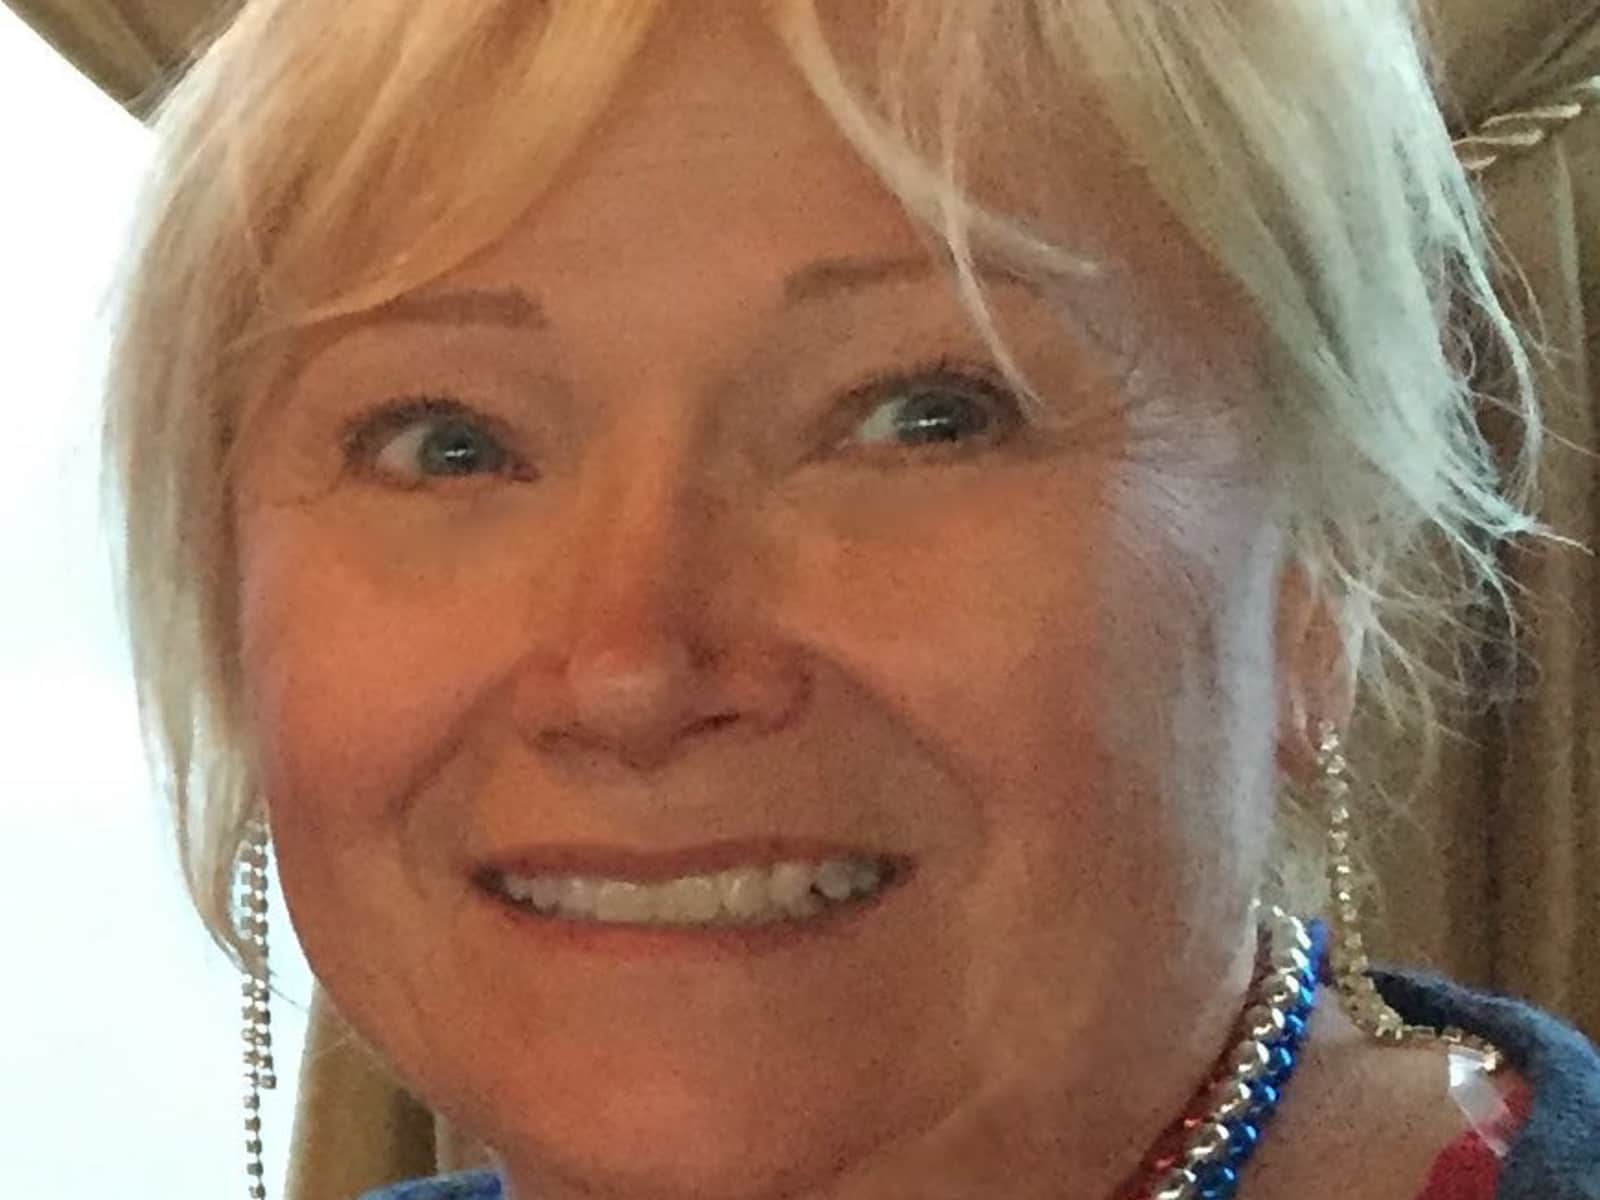 Joyce from Livermore, California, United States